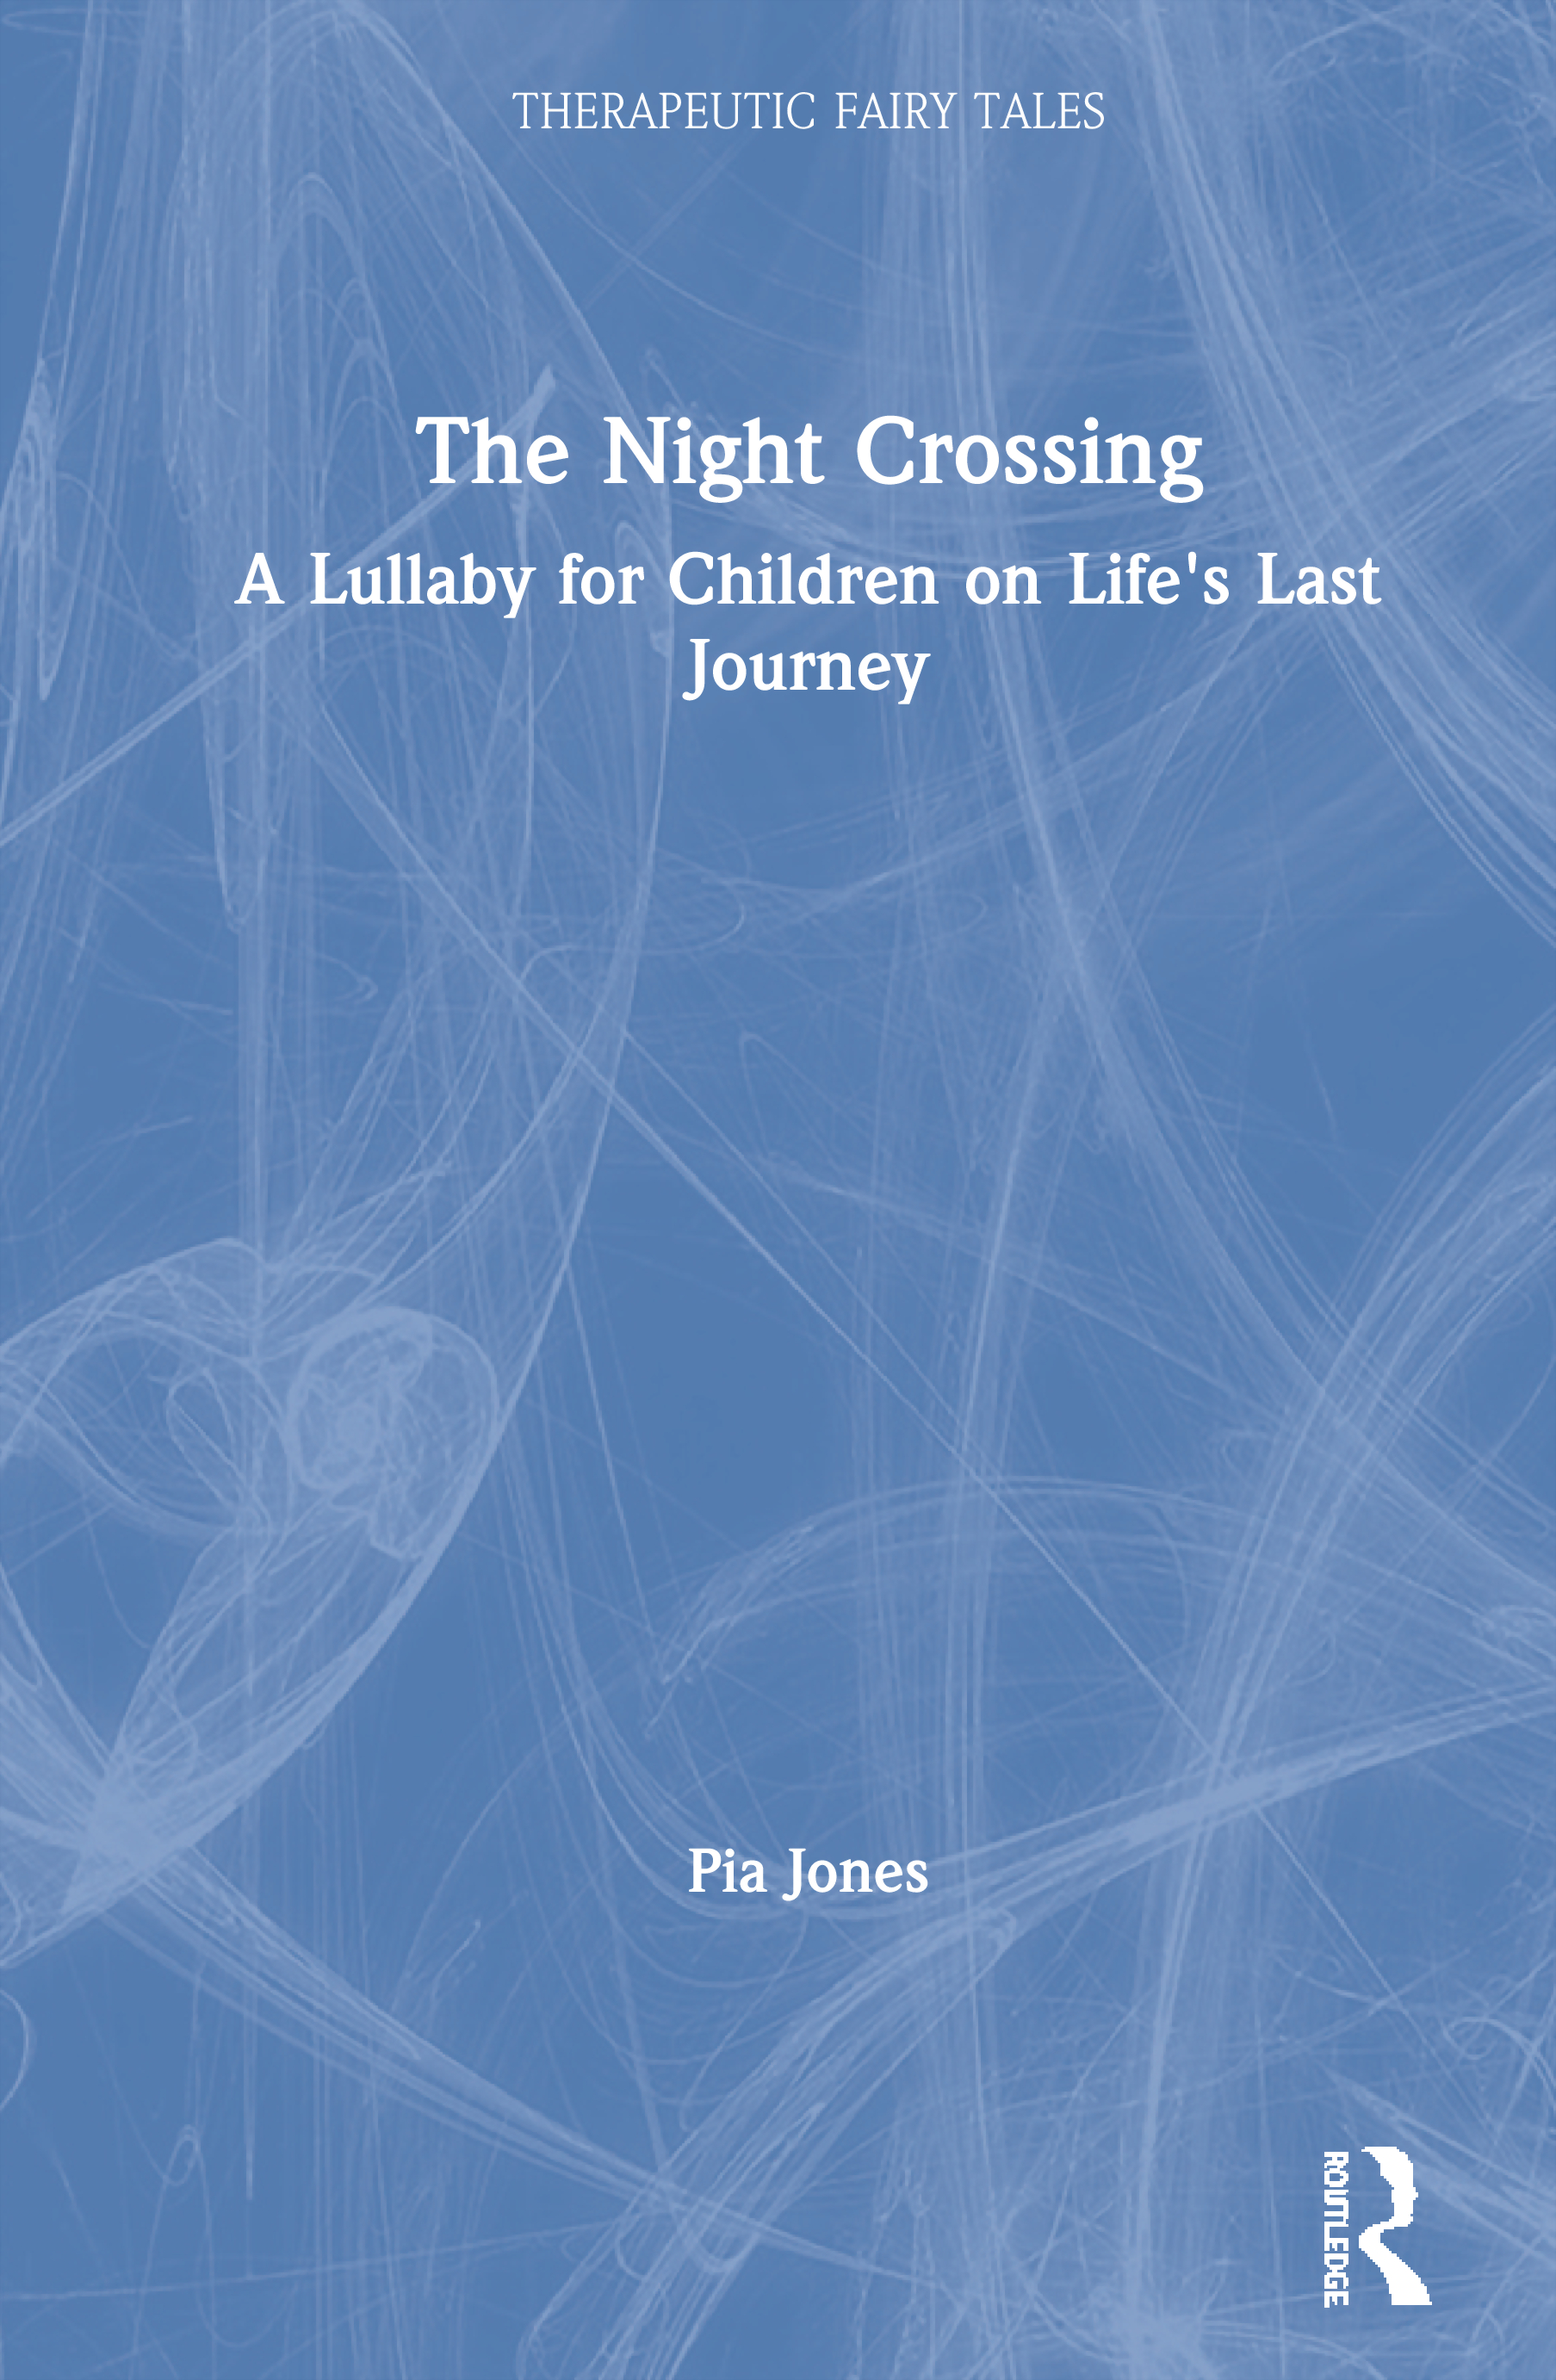 The Night Crossing: A Lullaby for Children on Life's Last Journey book cover